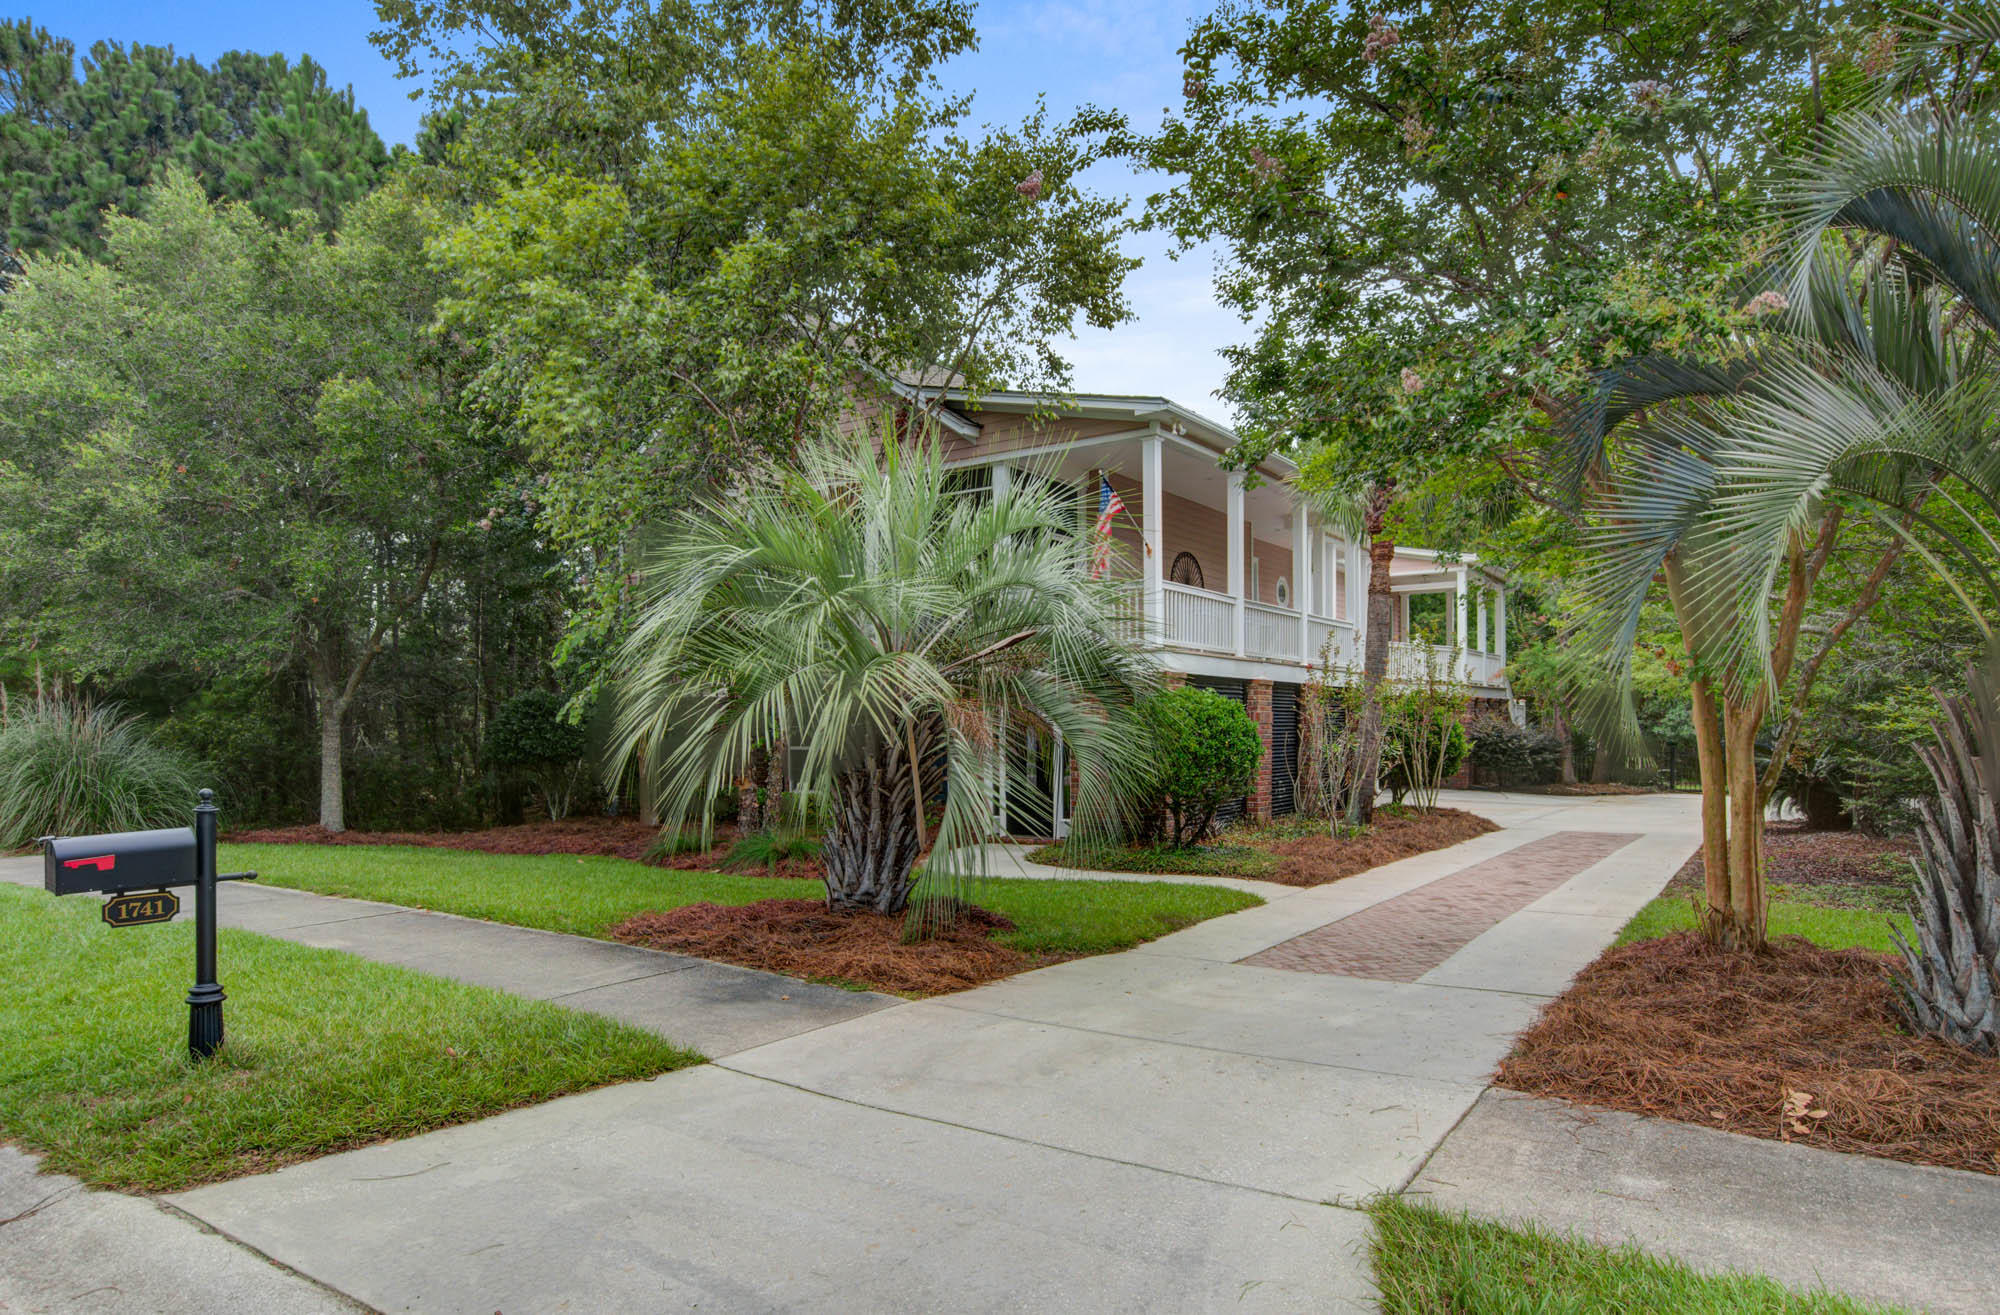 Rivertowne Country Club Homes For Sale - 1741 Rivertowne Country Club, Mount Pleasant, SC - 10